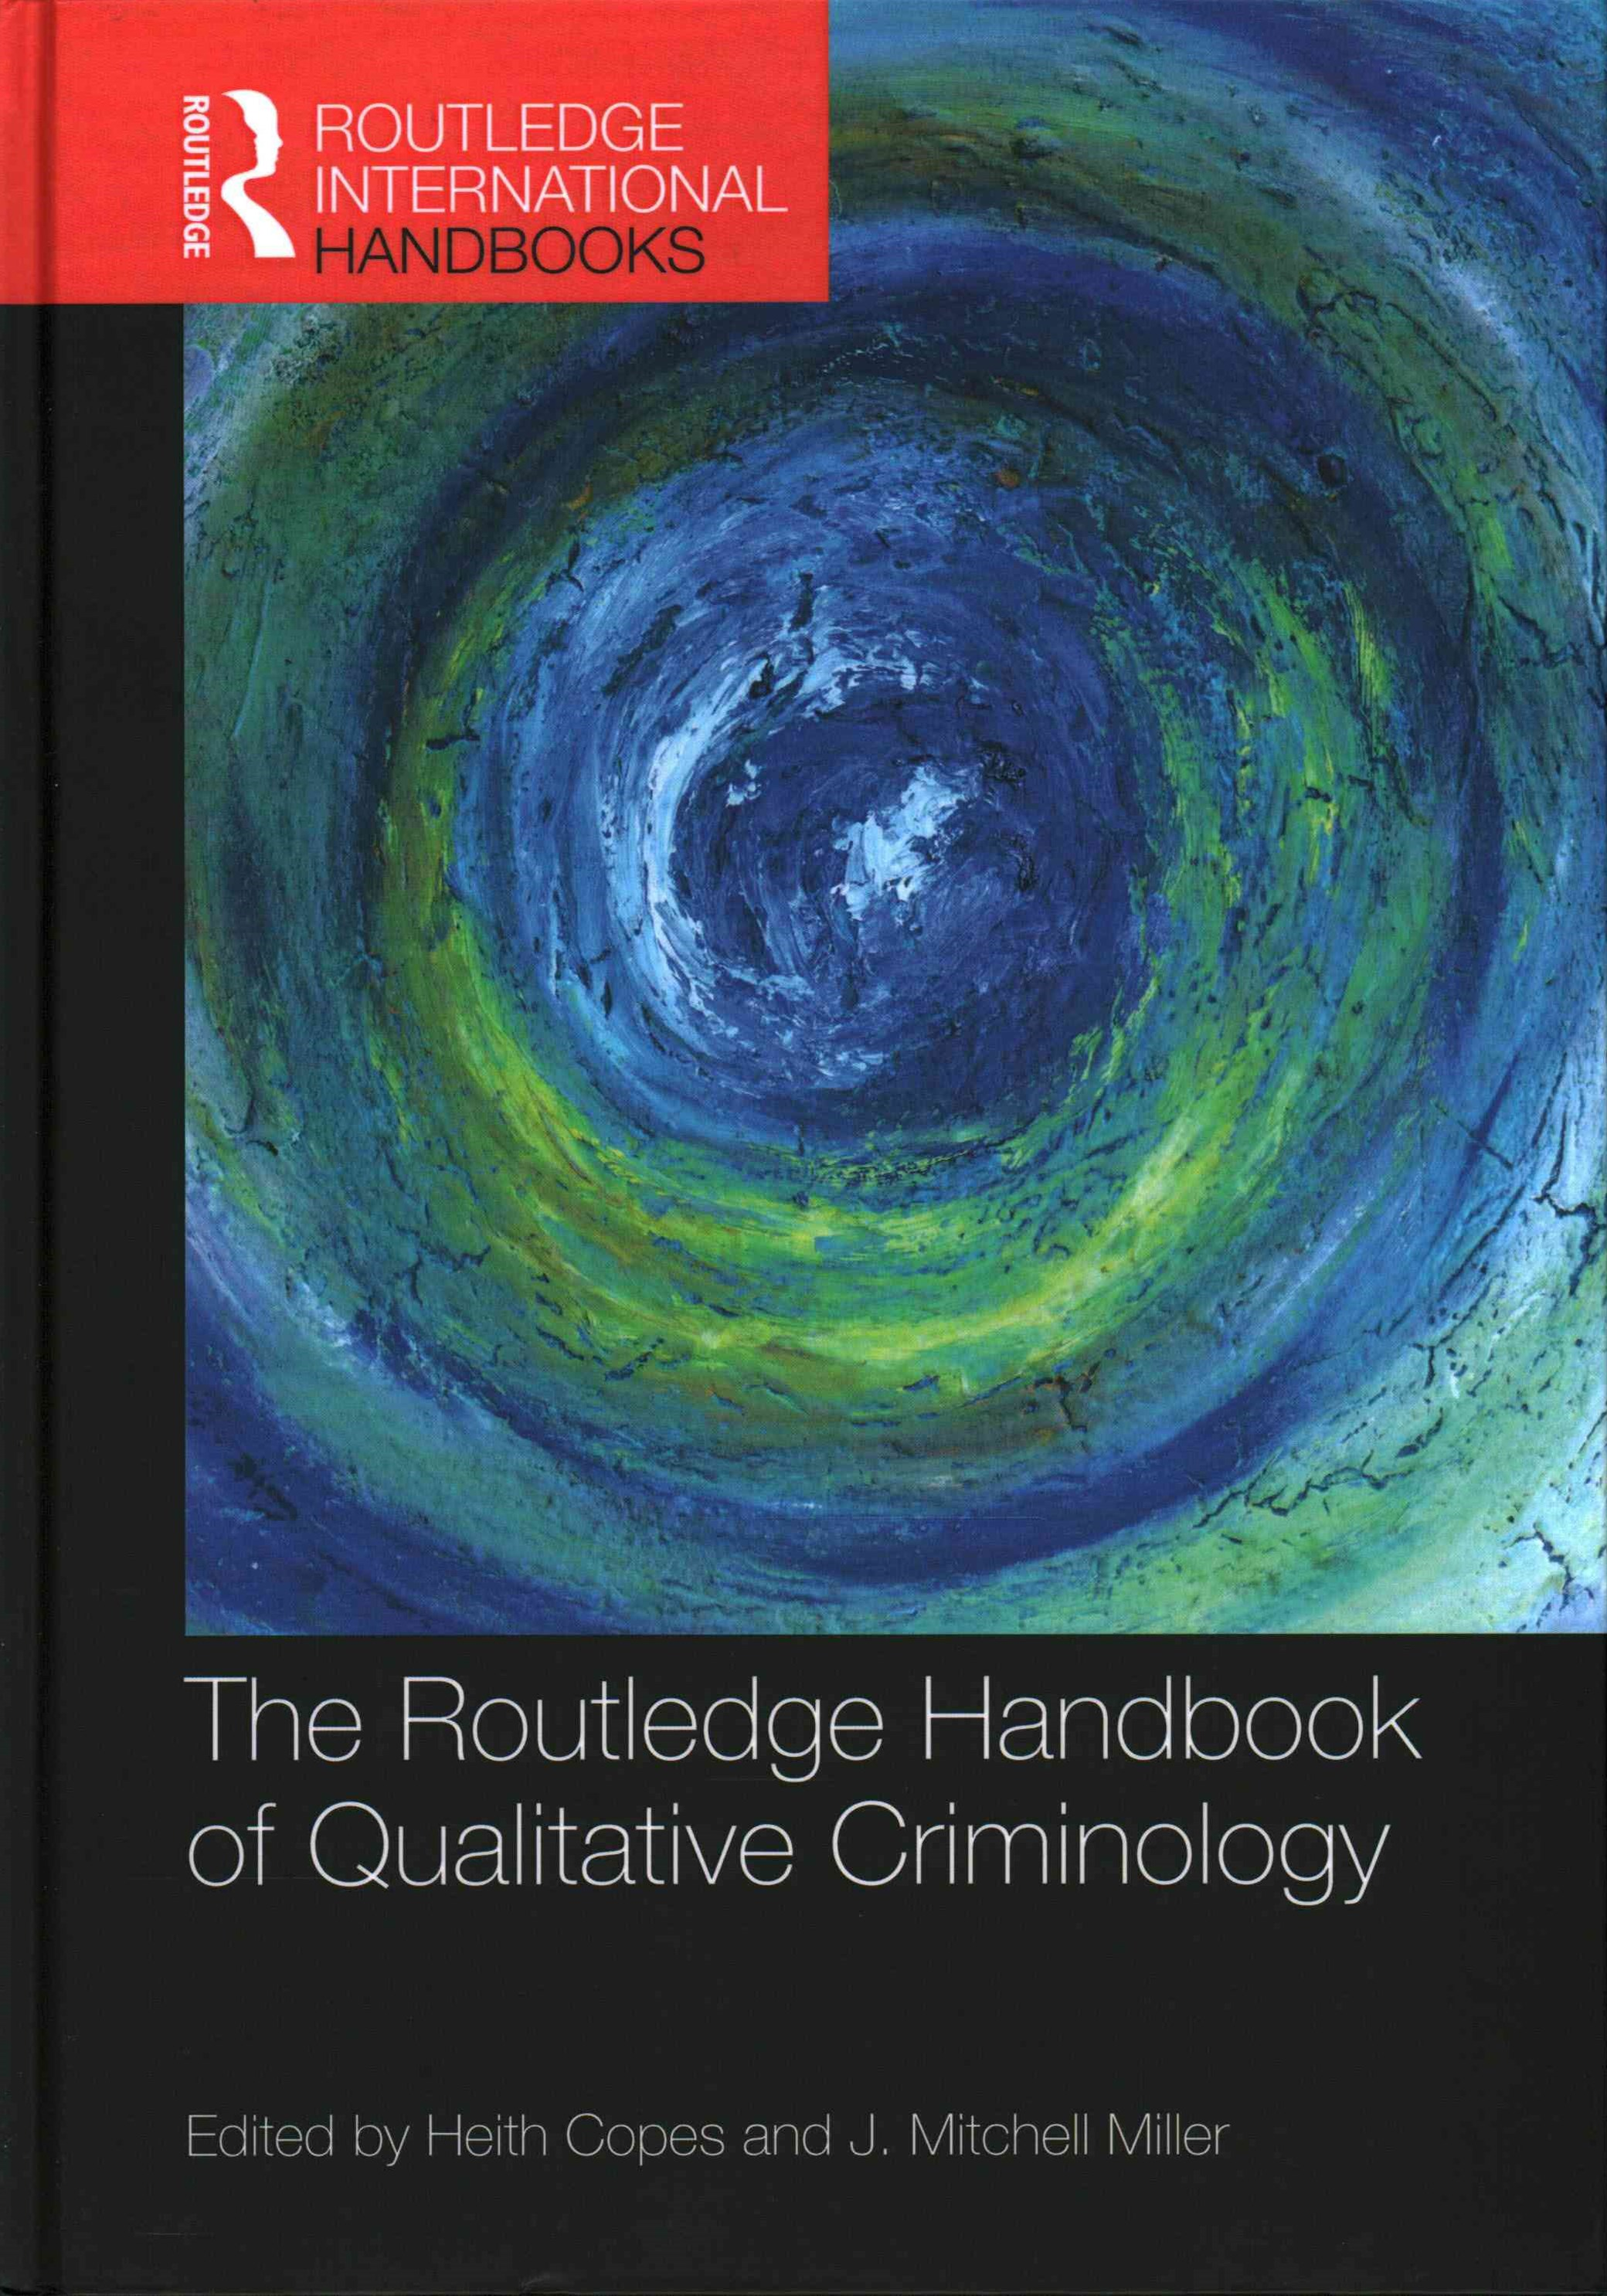 The Routledge International Handbook of Qualitative Criminology